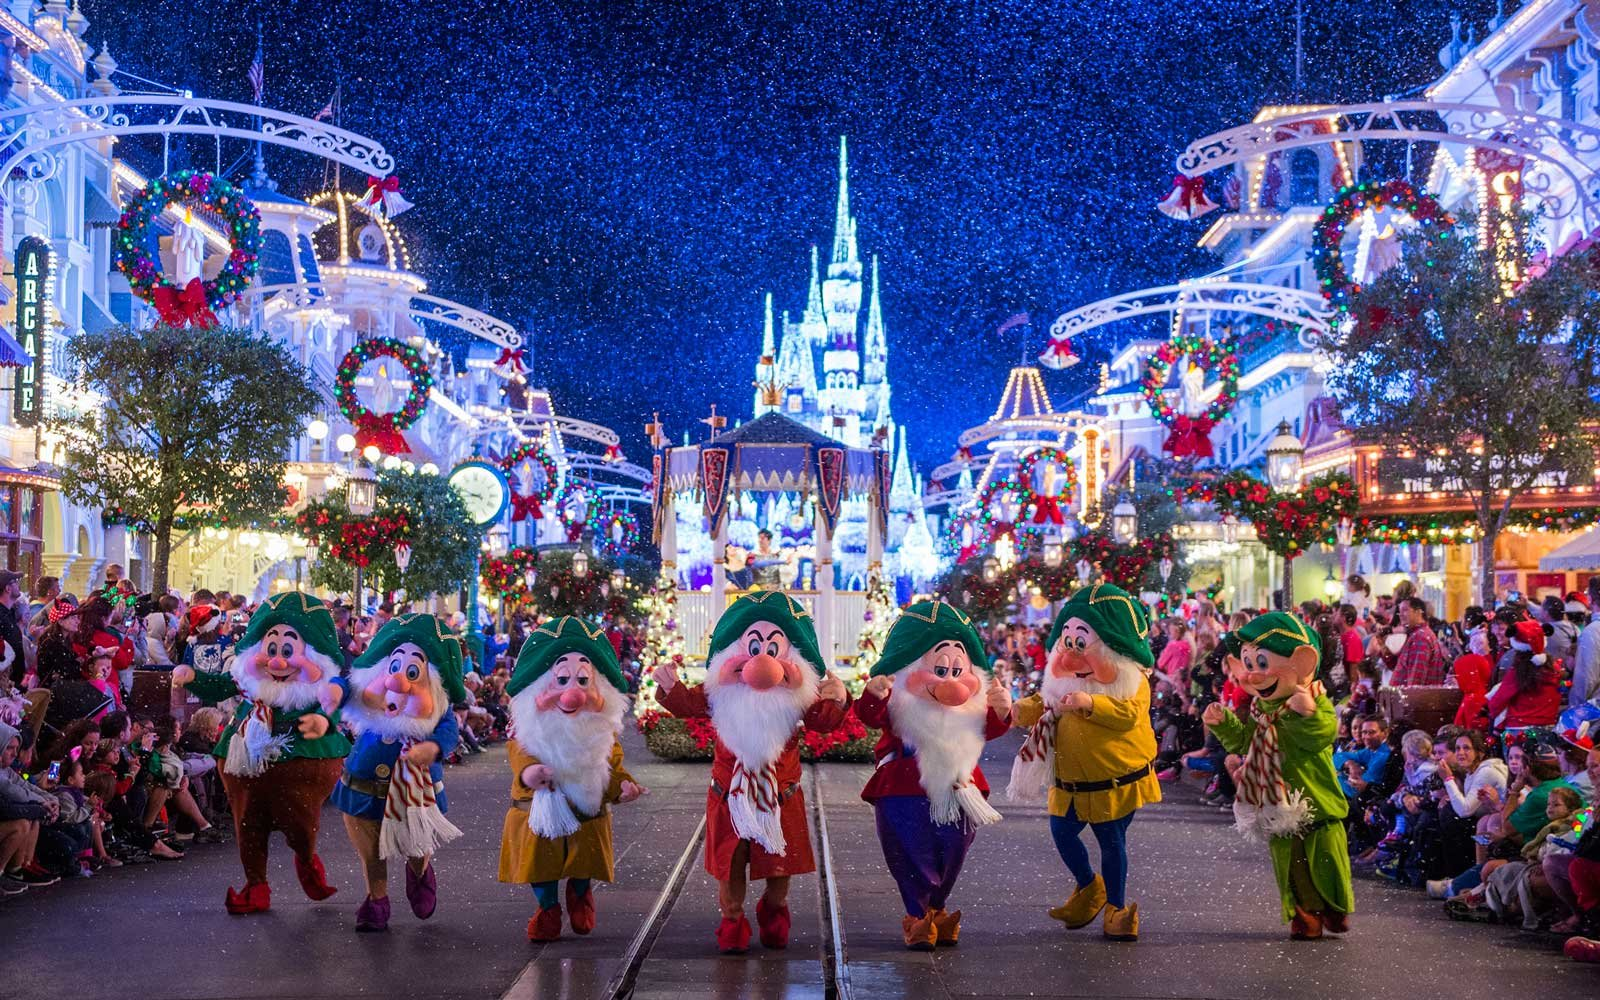 walt disney world magic kingdom at christmas time - Disney World Christmas Decorations 2017